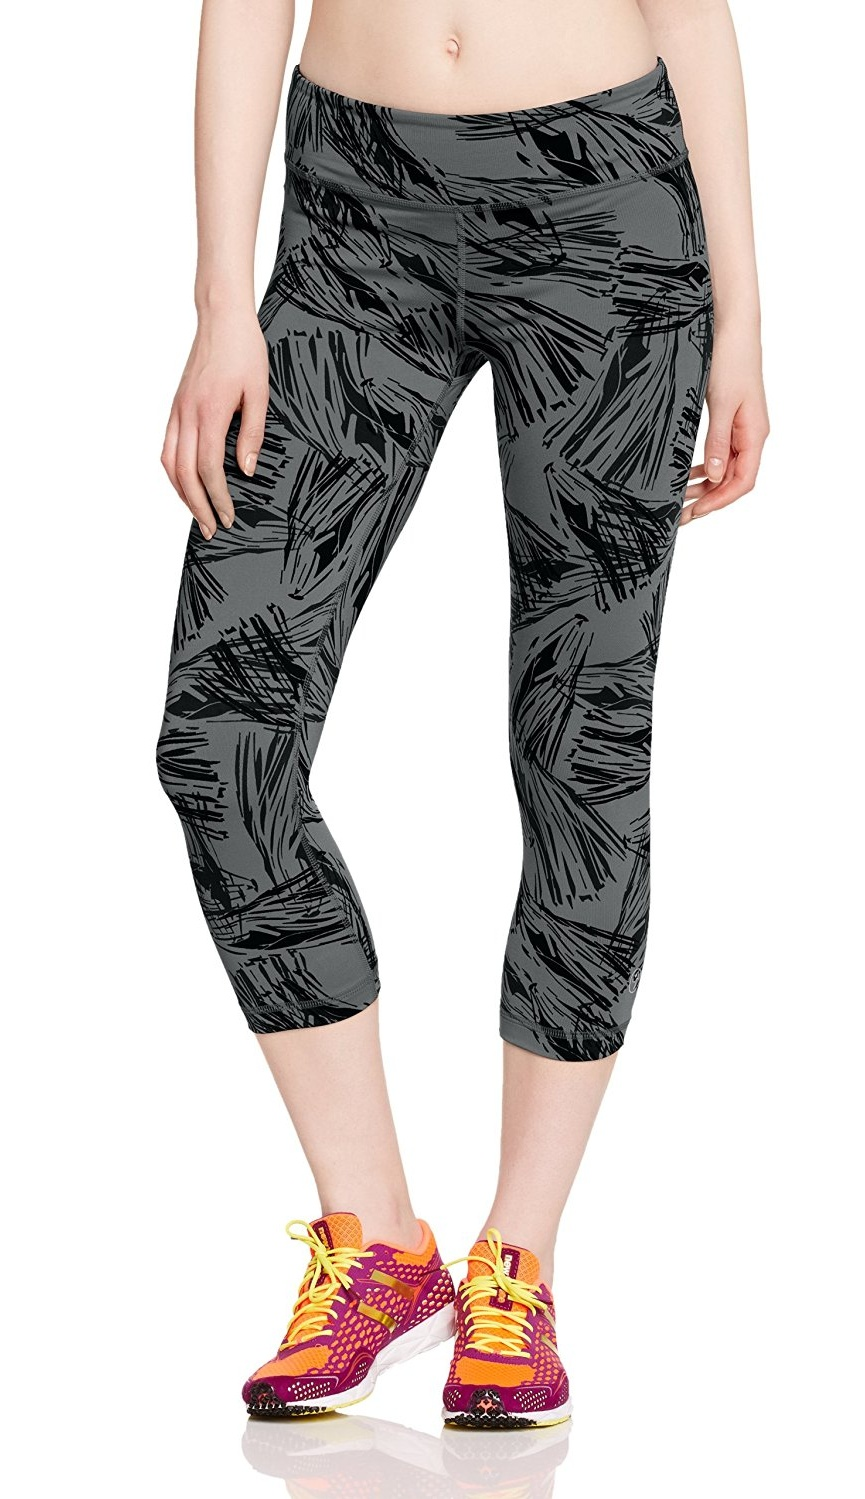 Women's Zumba Fitness Damen WB Let's Tassel Capri Pants Z1B00262 Leggings by Zumba